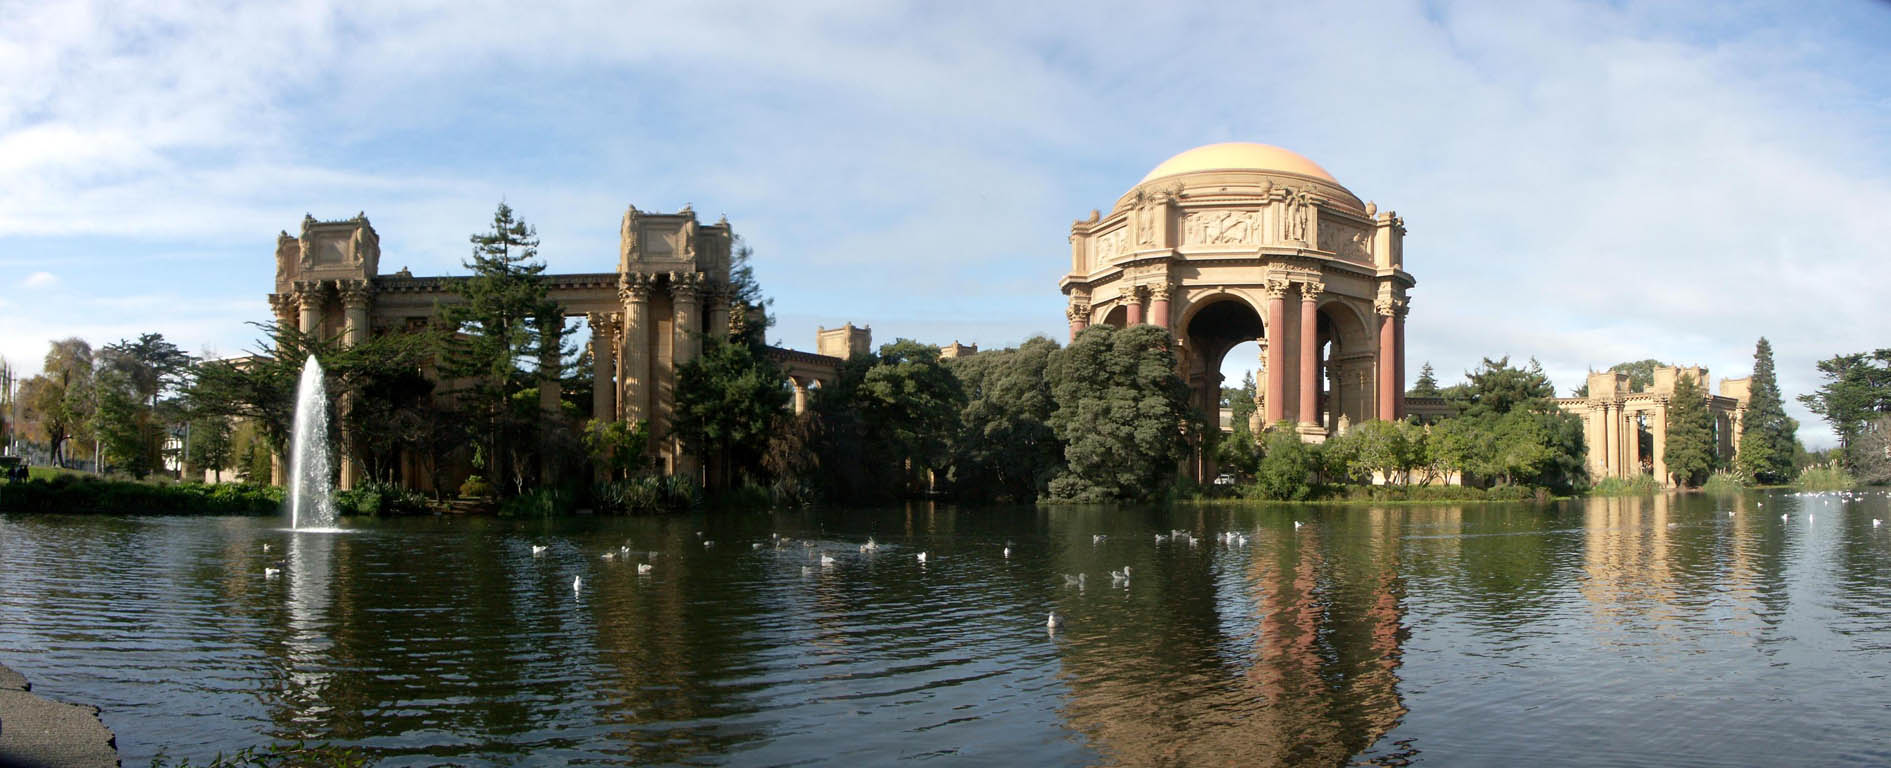 17 Top-Rated Tourist Attractions in San Francisco